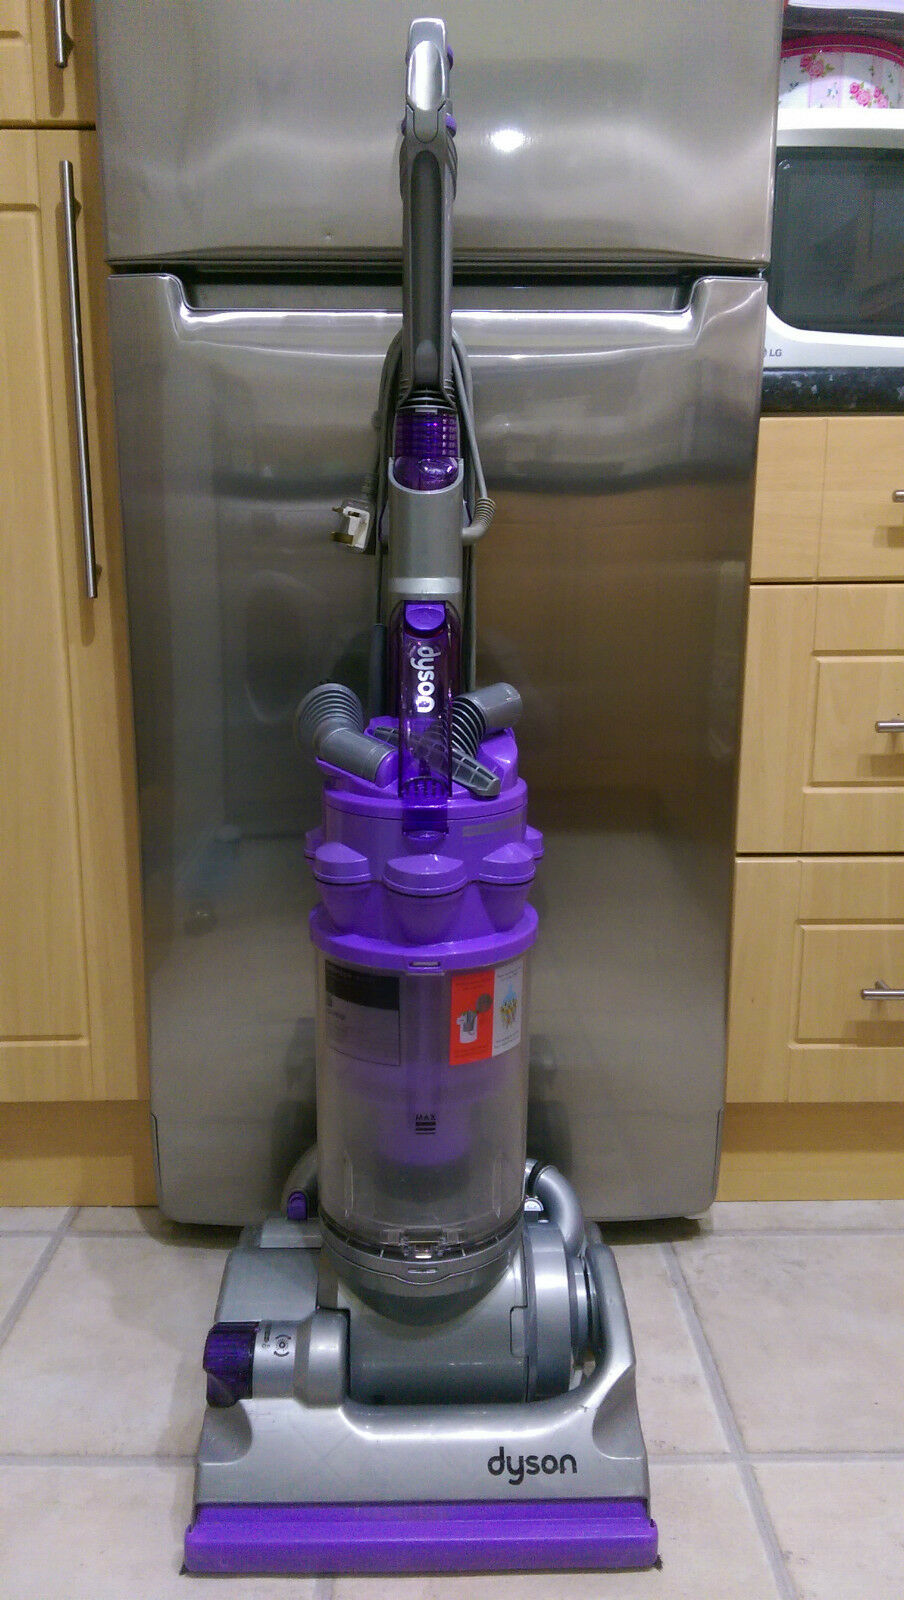 Dyson Dc14 Animal Refurbished 1 Year Warranty With Tools